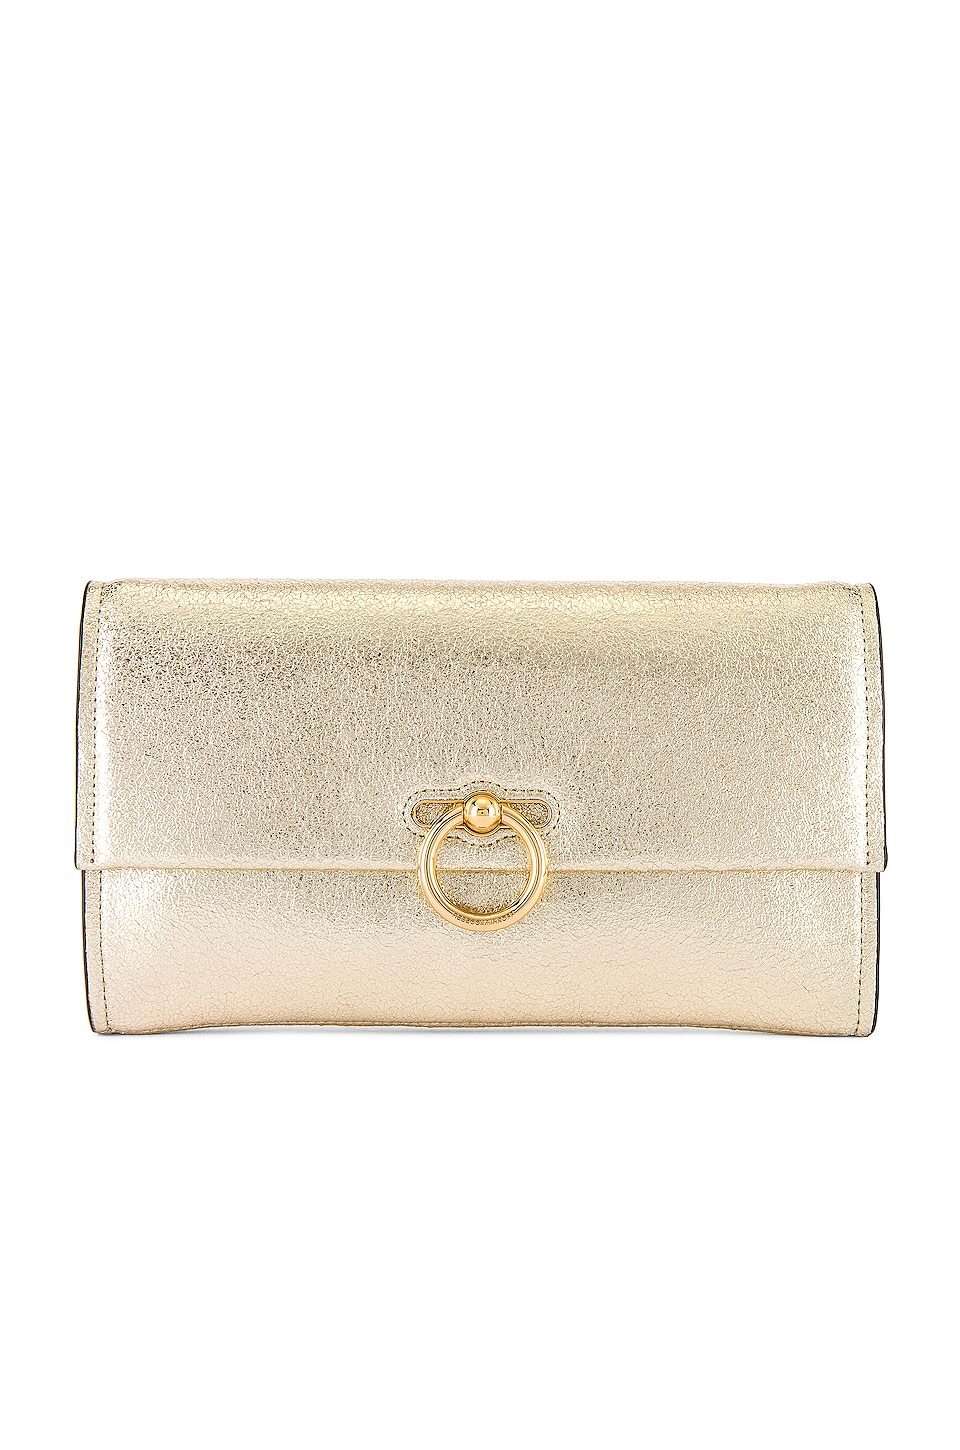 Rebecca Minkoff Jean Convertible Clutch in Champagne